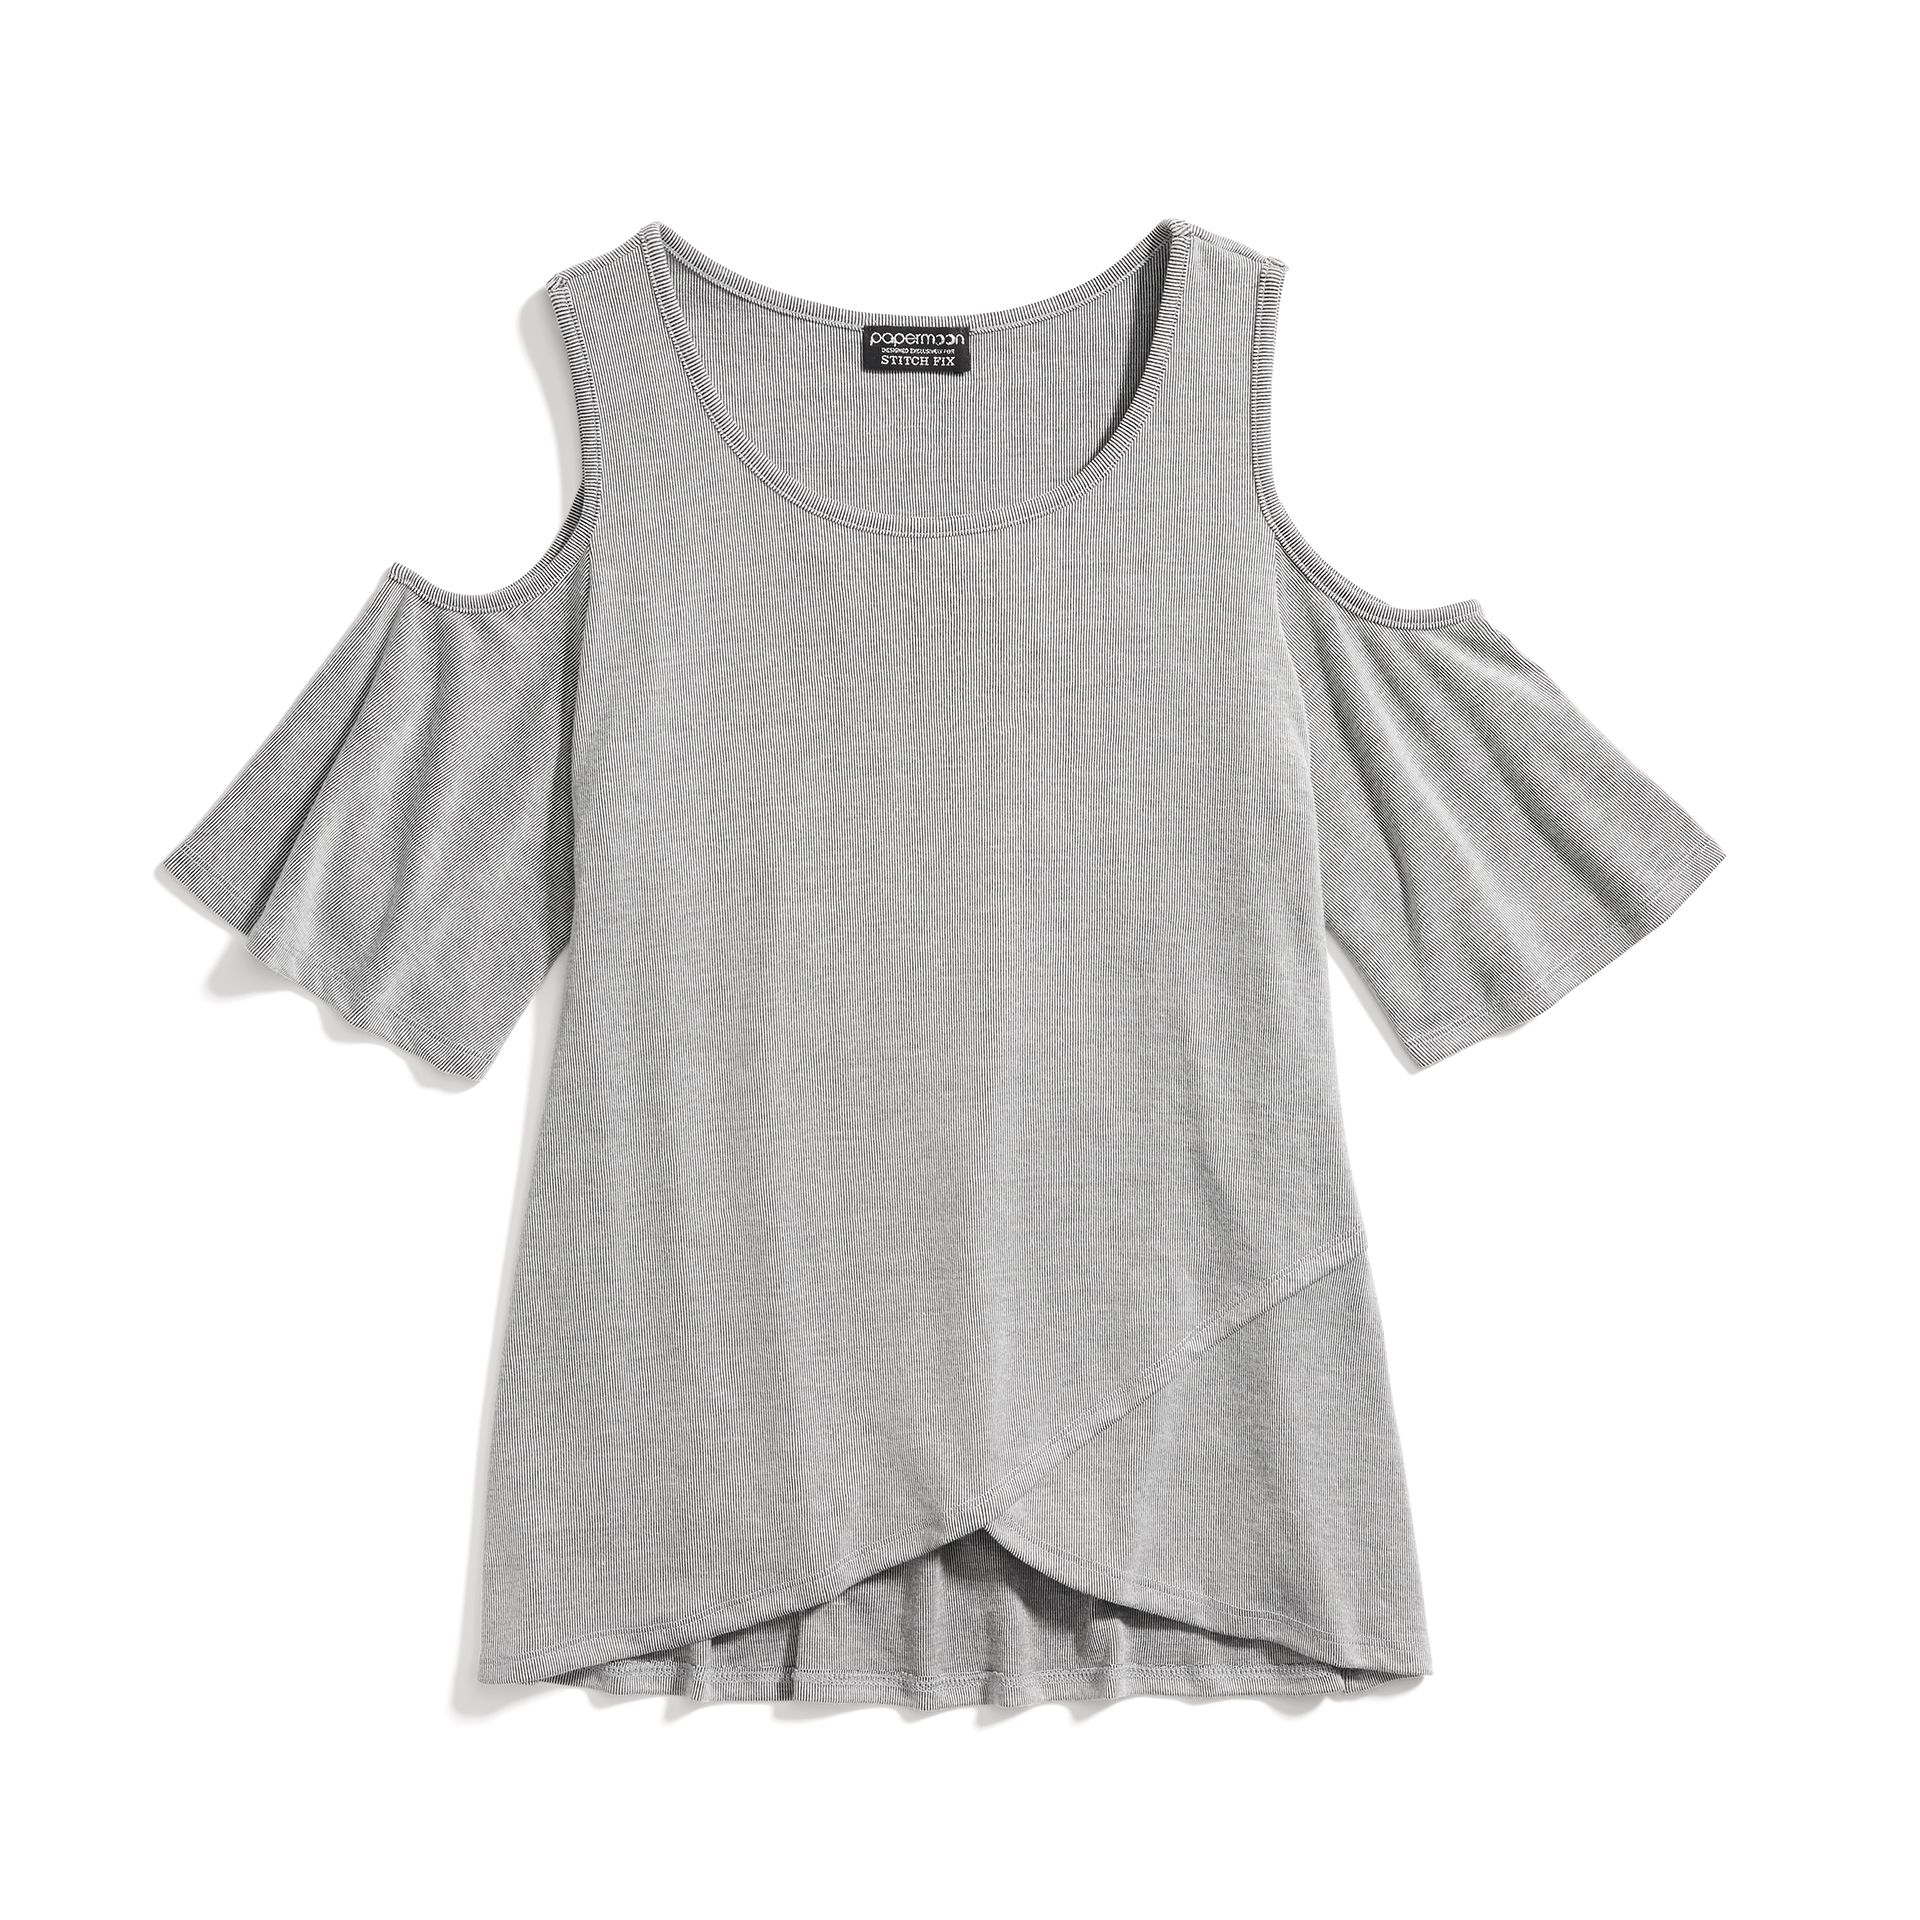 3a868e58cc3f Stitch Fix New Arrivals: Grey Cold-Shoulder Top Cold Shoulder Shirt,  Shoulder Shirts